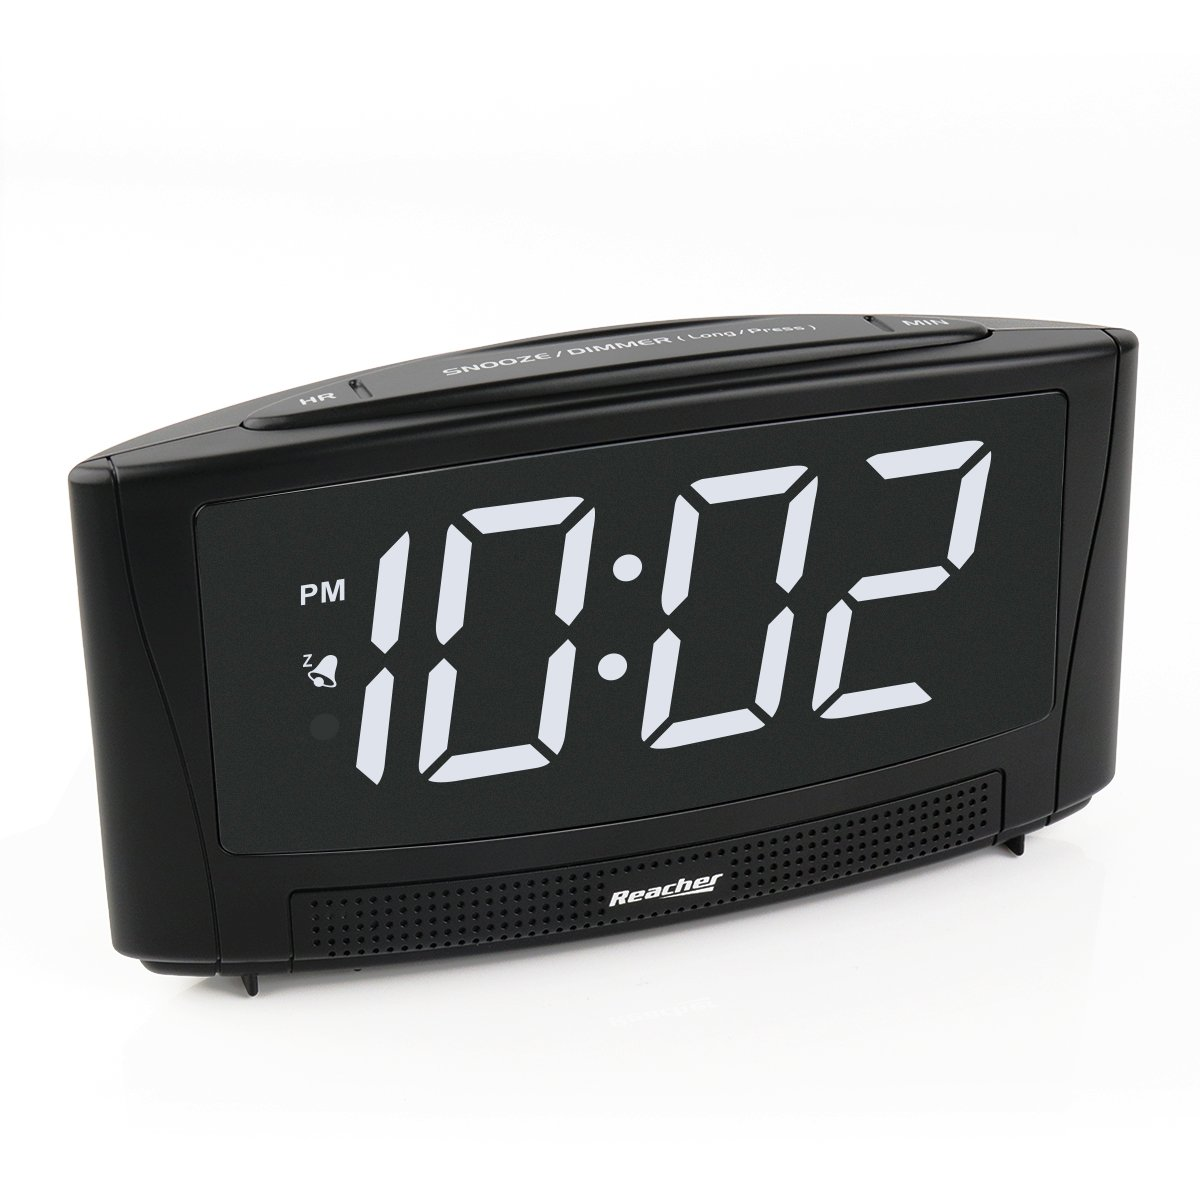 Reacher Digital Alarm Clock with USB Charger Port 6 Large Electric LED Display Simple Operation and Easy Snooze Outlet Powered for Bedrooms Bedside Phone iPhone - Black A1C1+++